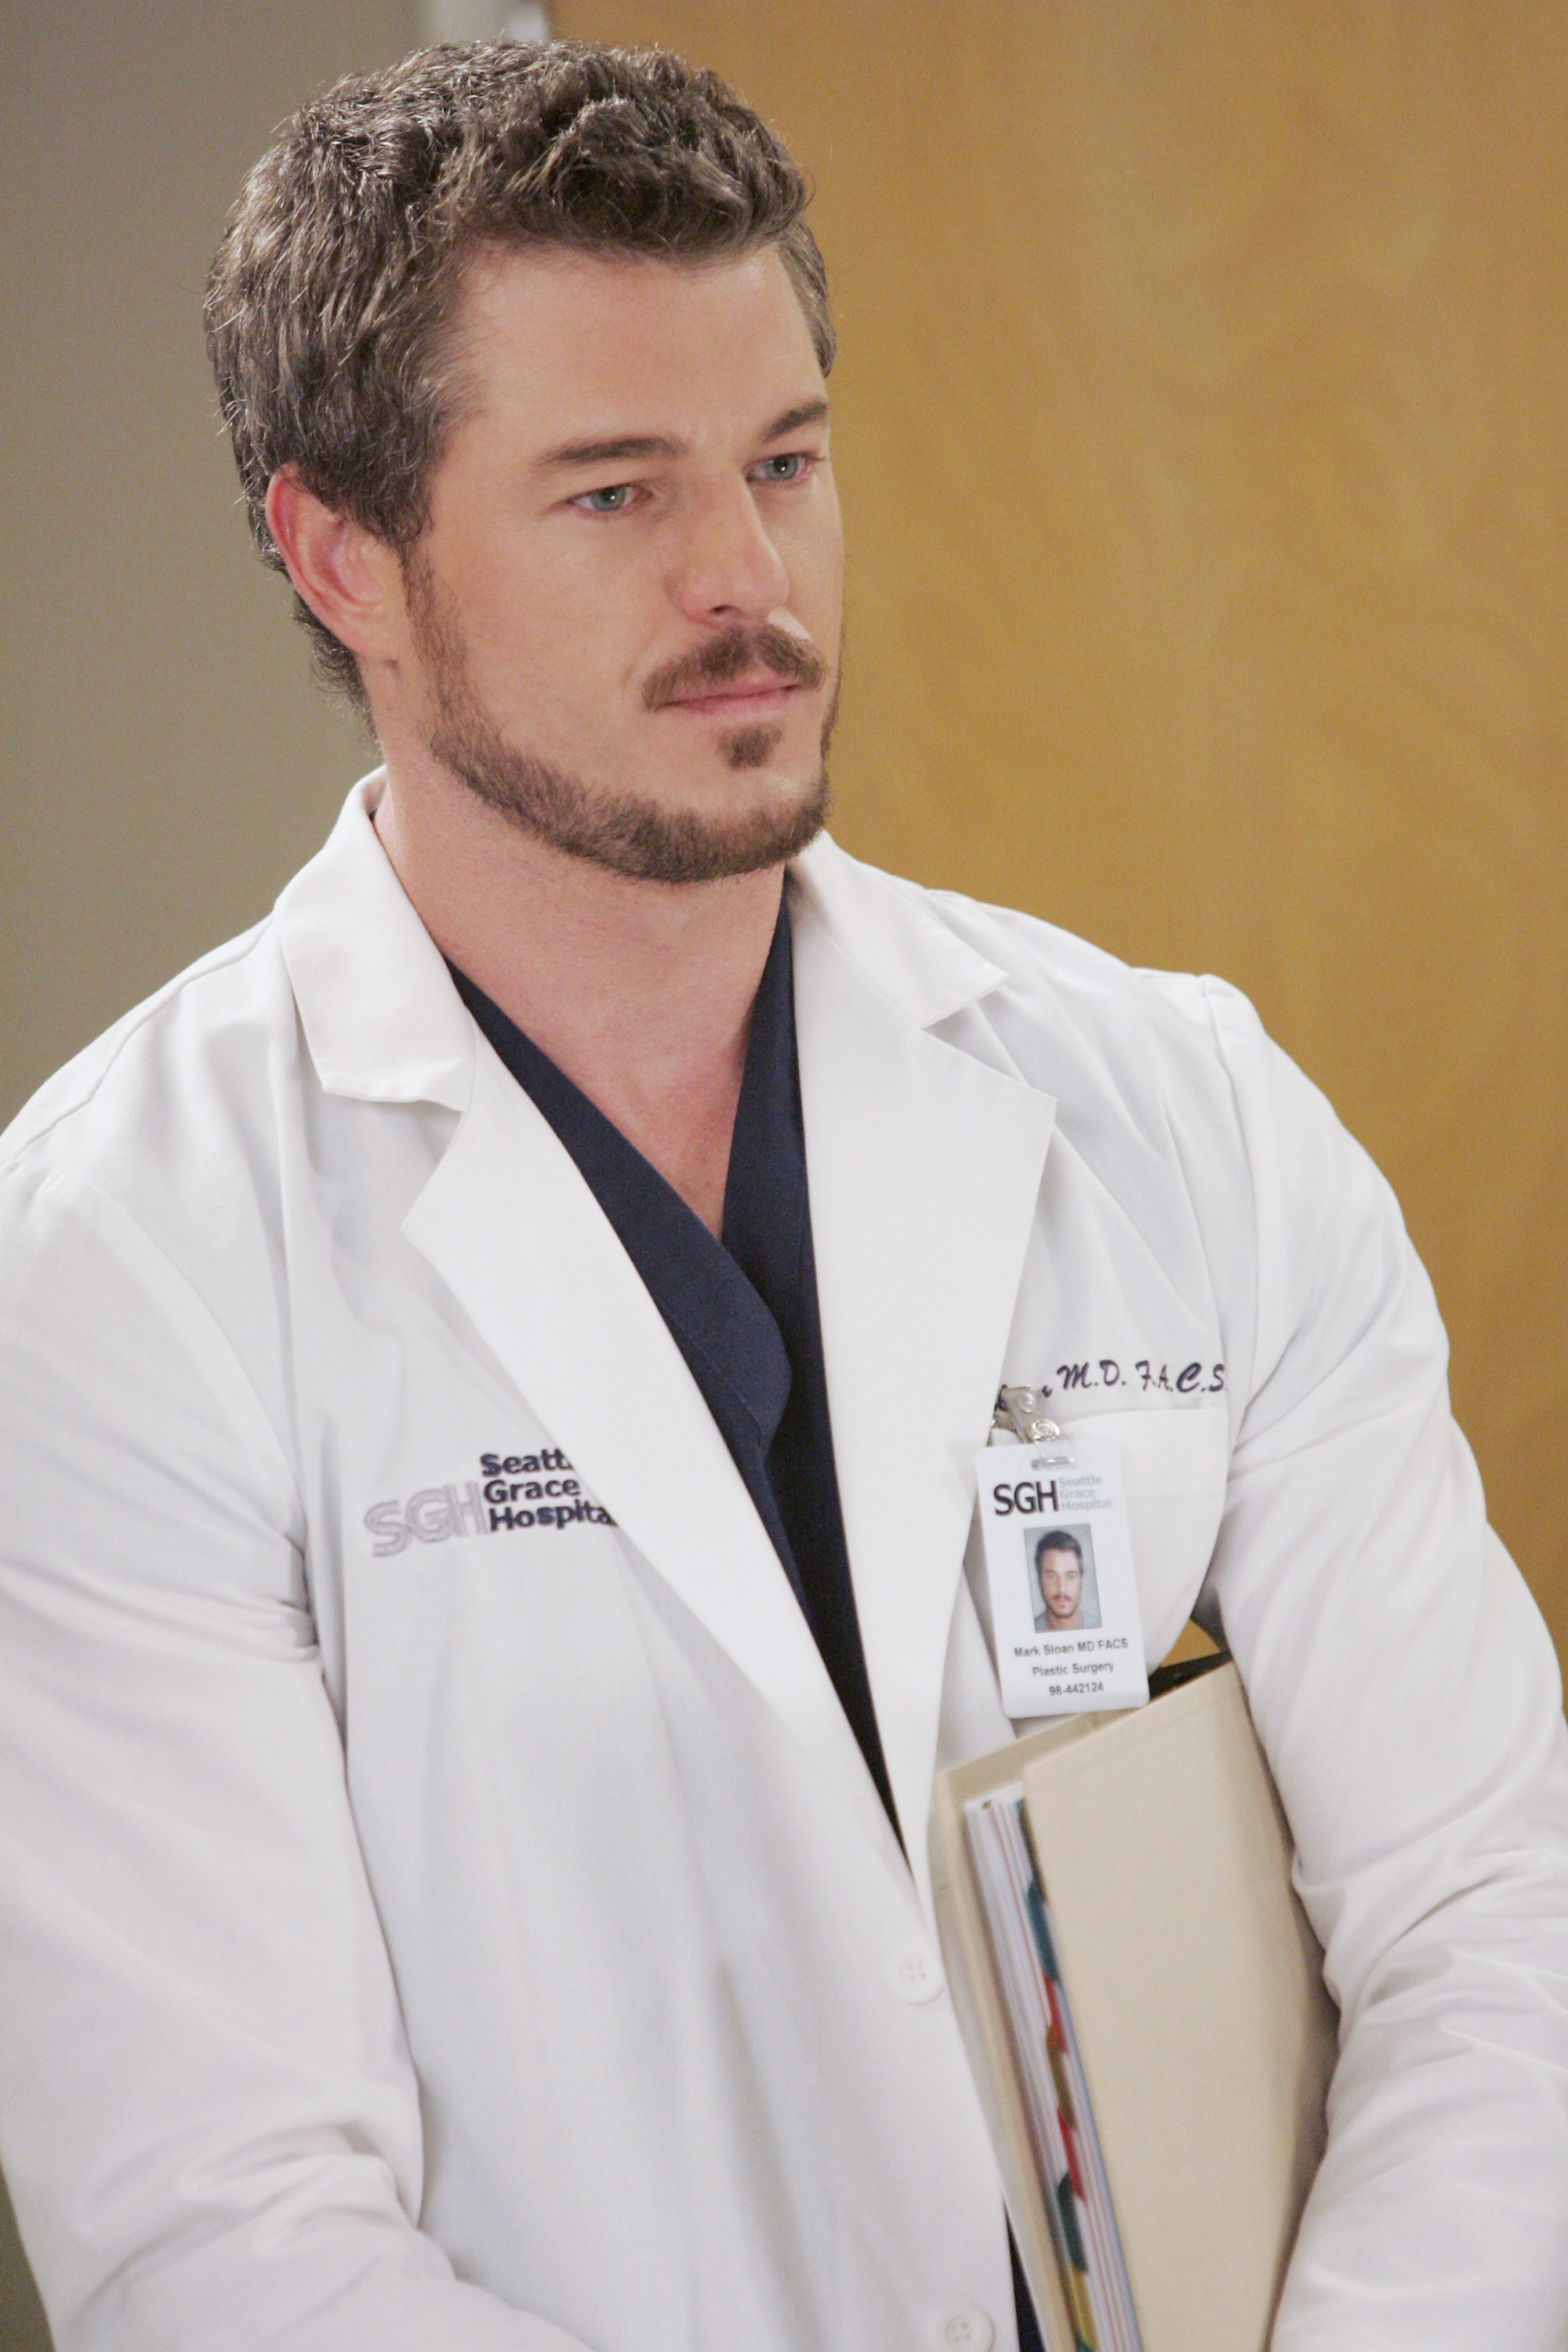 Mark Sloan Grey's Anatomy Getty Images